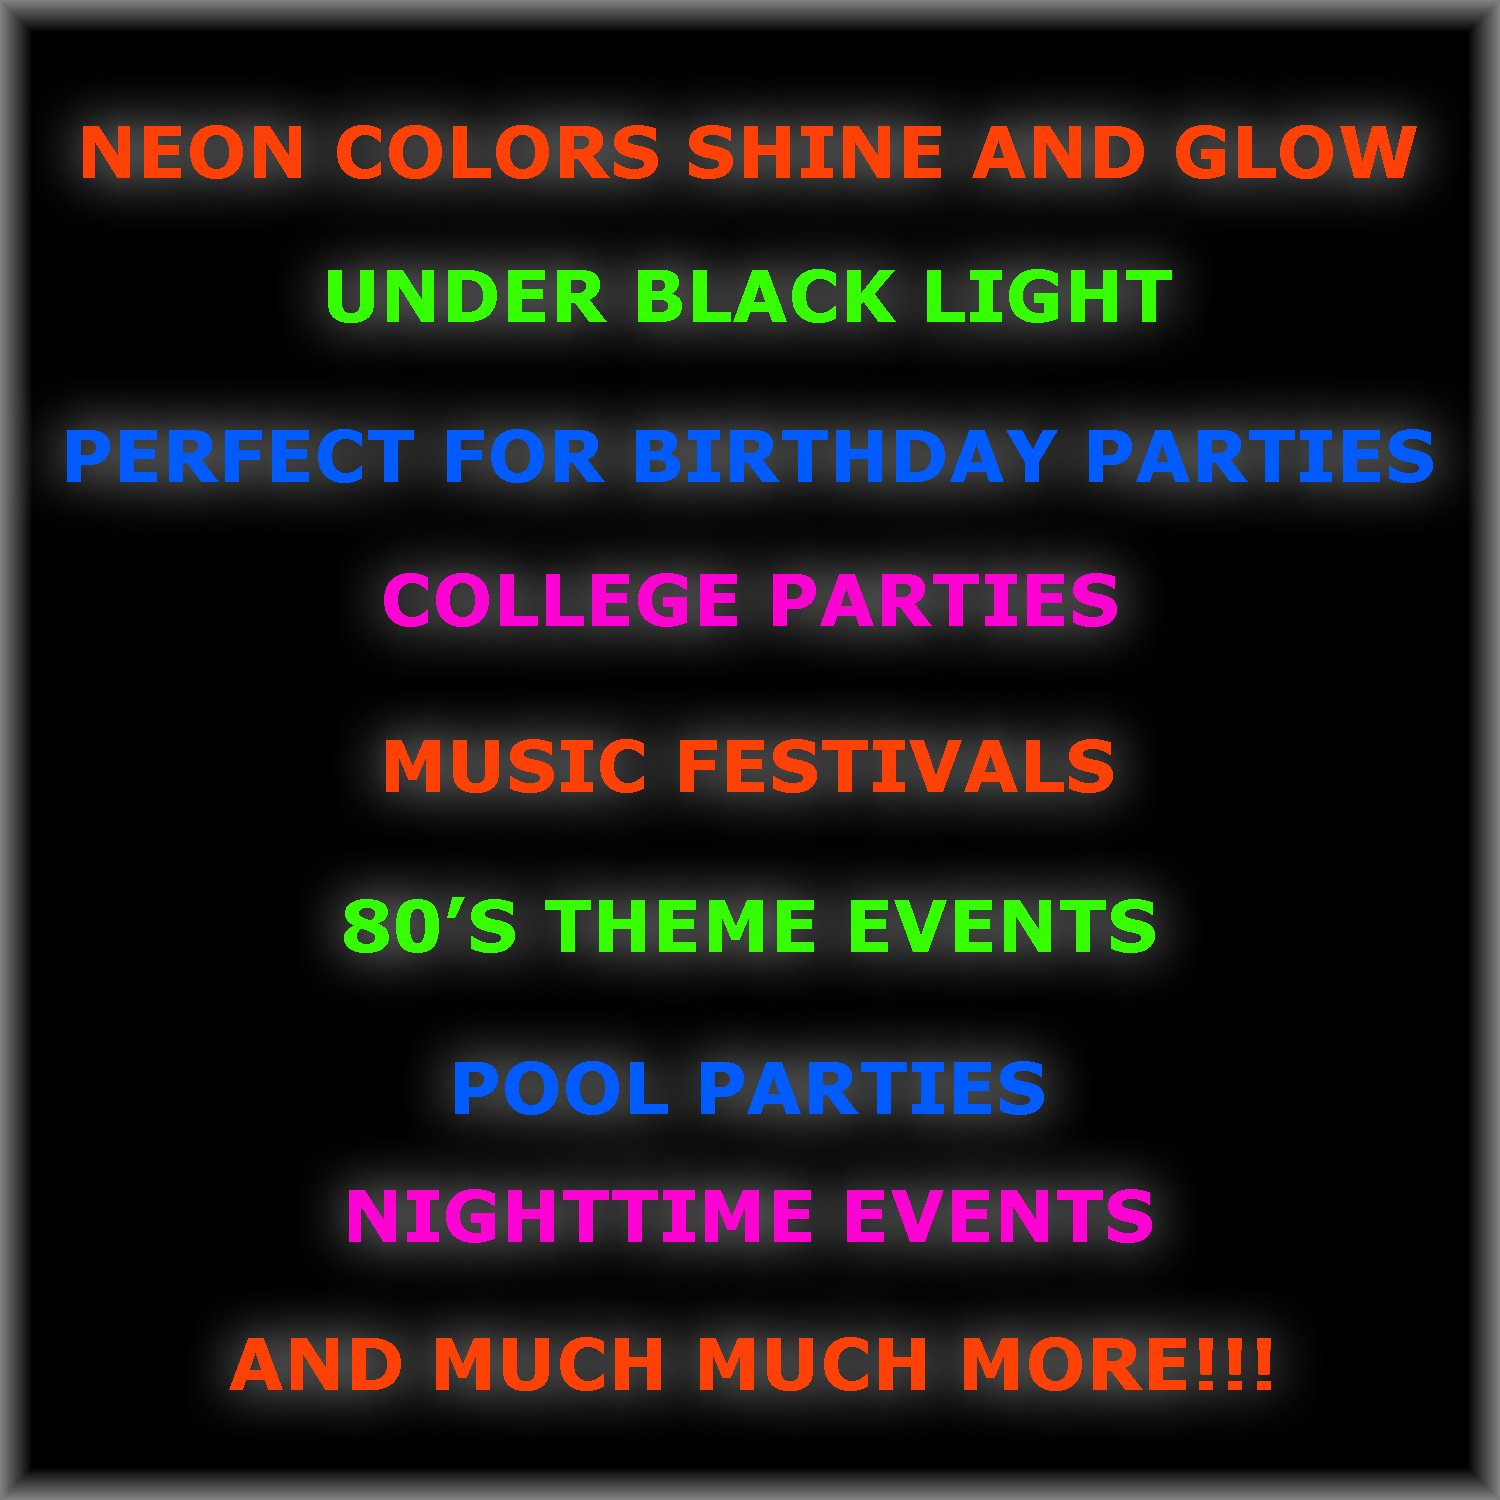 Neon Plates (9''), Cups (12 oz) & Napkins - 40 Servings, 4 colors - Black Light Party Supplies, Glow-in-the-Dark with UV Light - for Birthdays, 80s Theme, Fiesta, clubs by HeroFiber (Image #4)